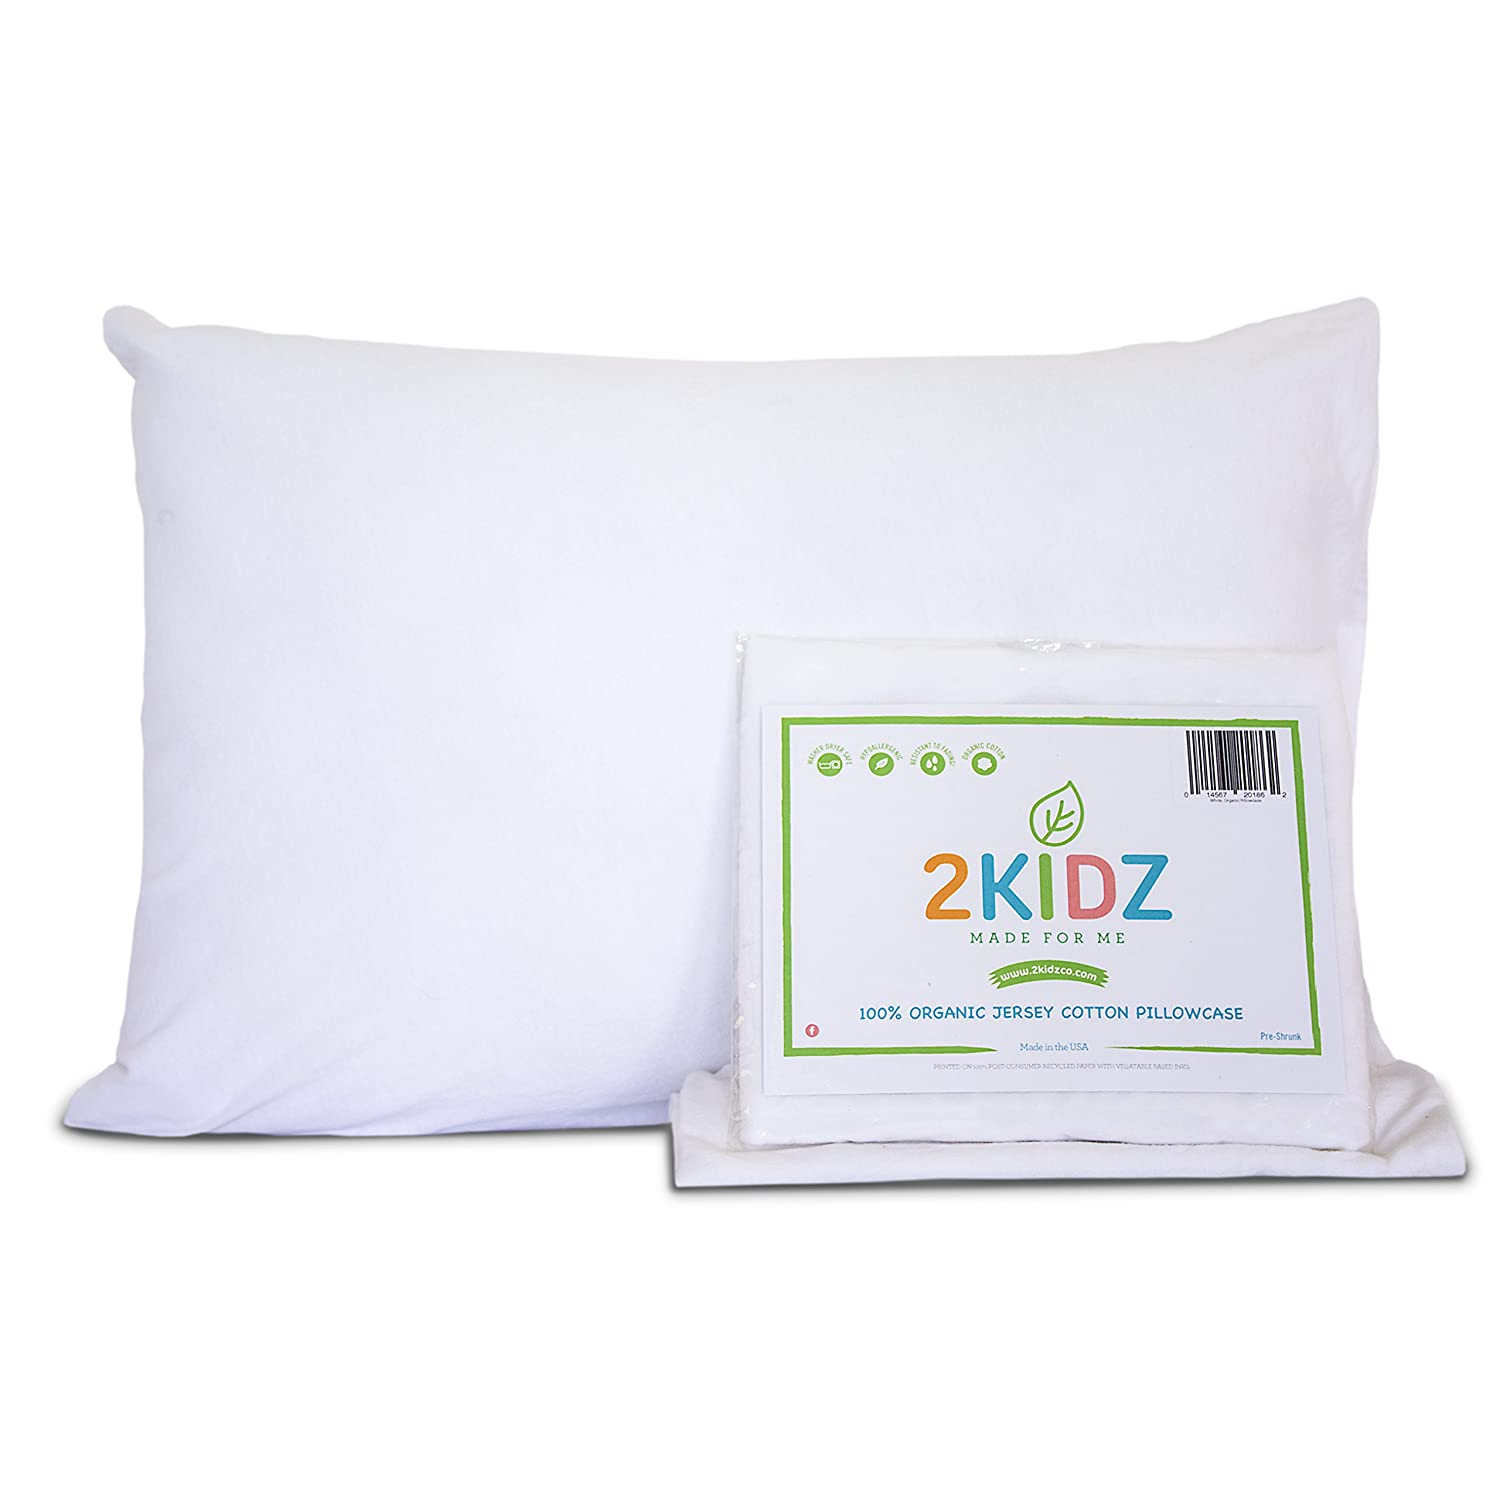 Toddler Pillowcase - 100% Organic Jersey Cotton. Made for a 13x18 Pillow. Perfect Size for Our Little Ones. Machine Washer and Dryer Safe. Made in USA. White